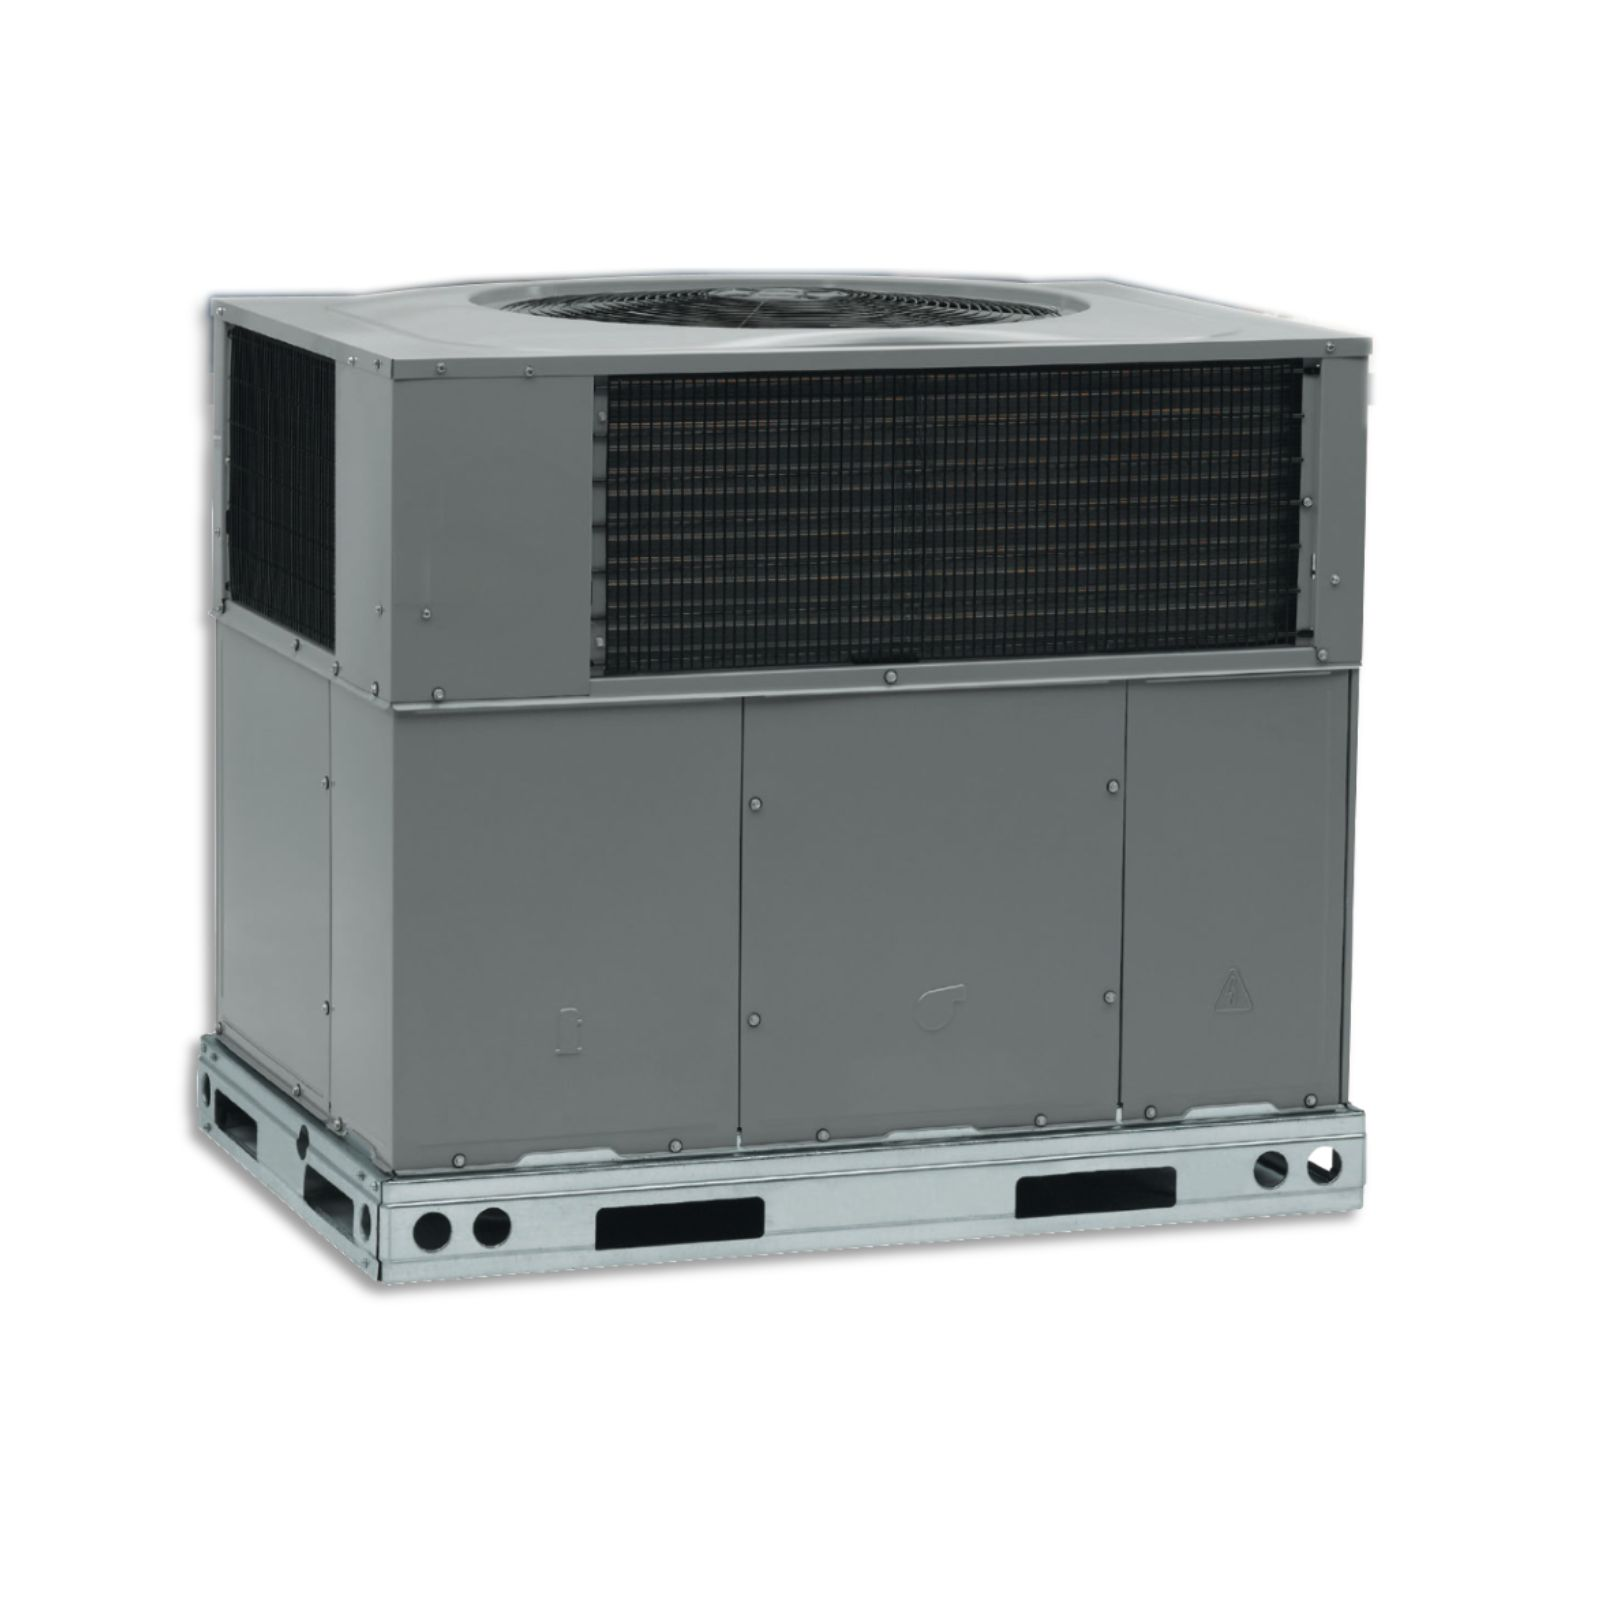 Tempstar PHD424000K000F - 2 Ton Package Heat Pump, 14.5 SEER, 208-230/1/60, R410A